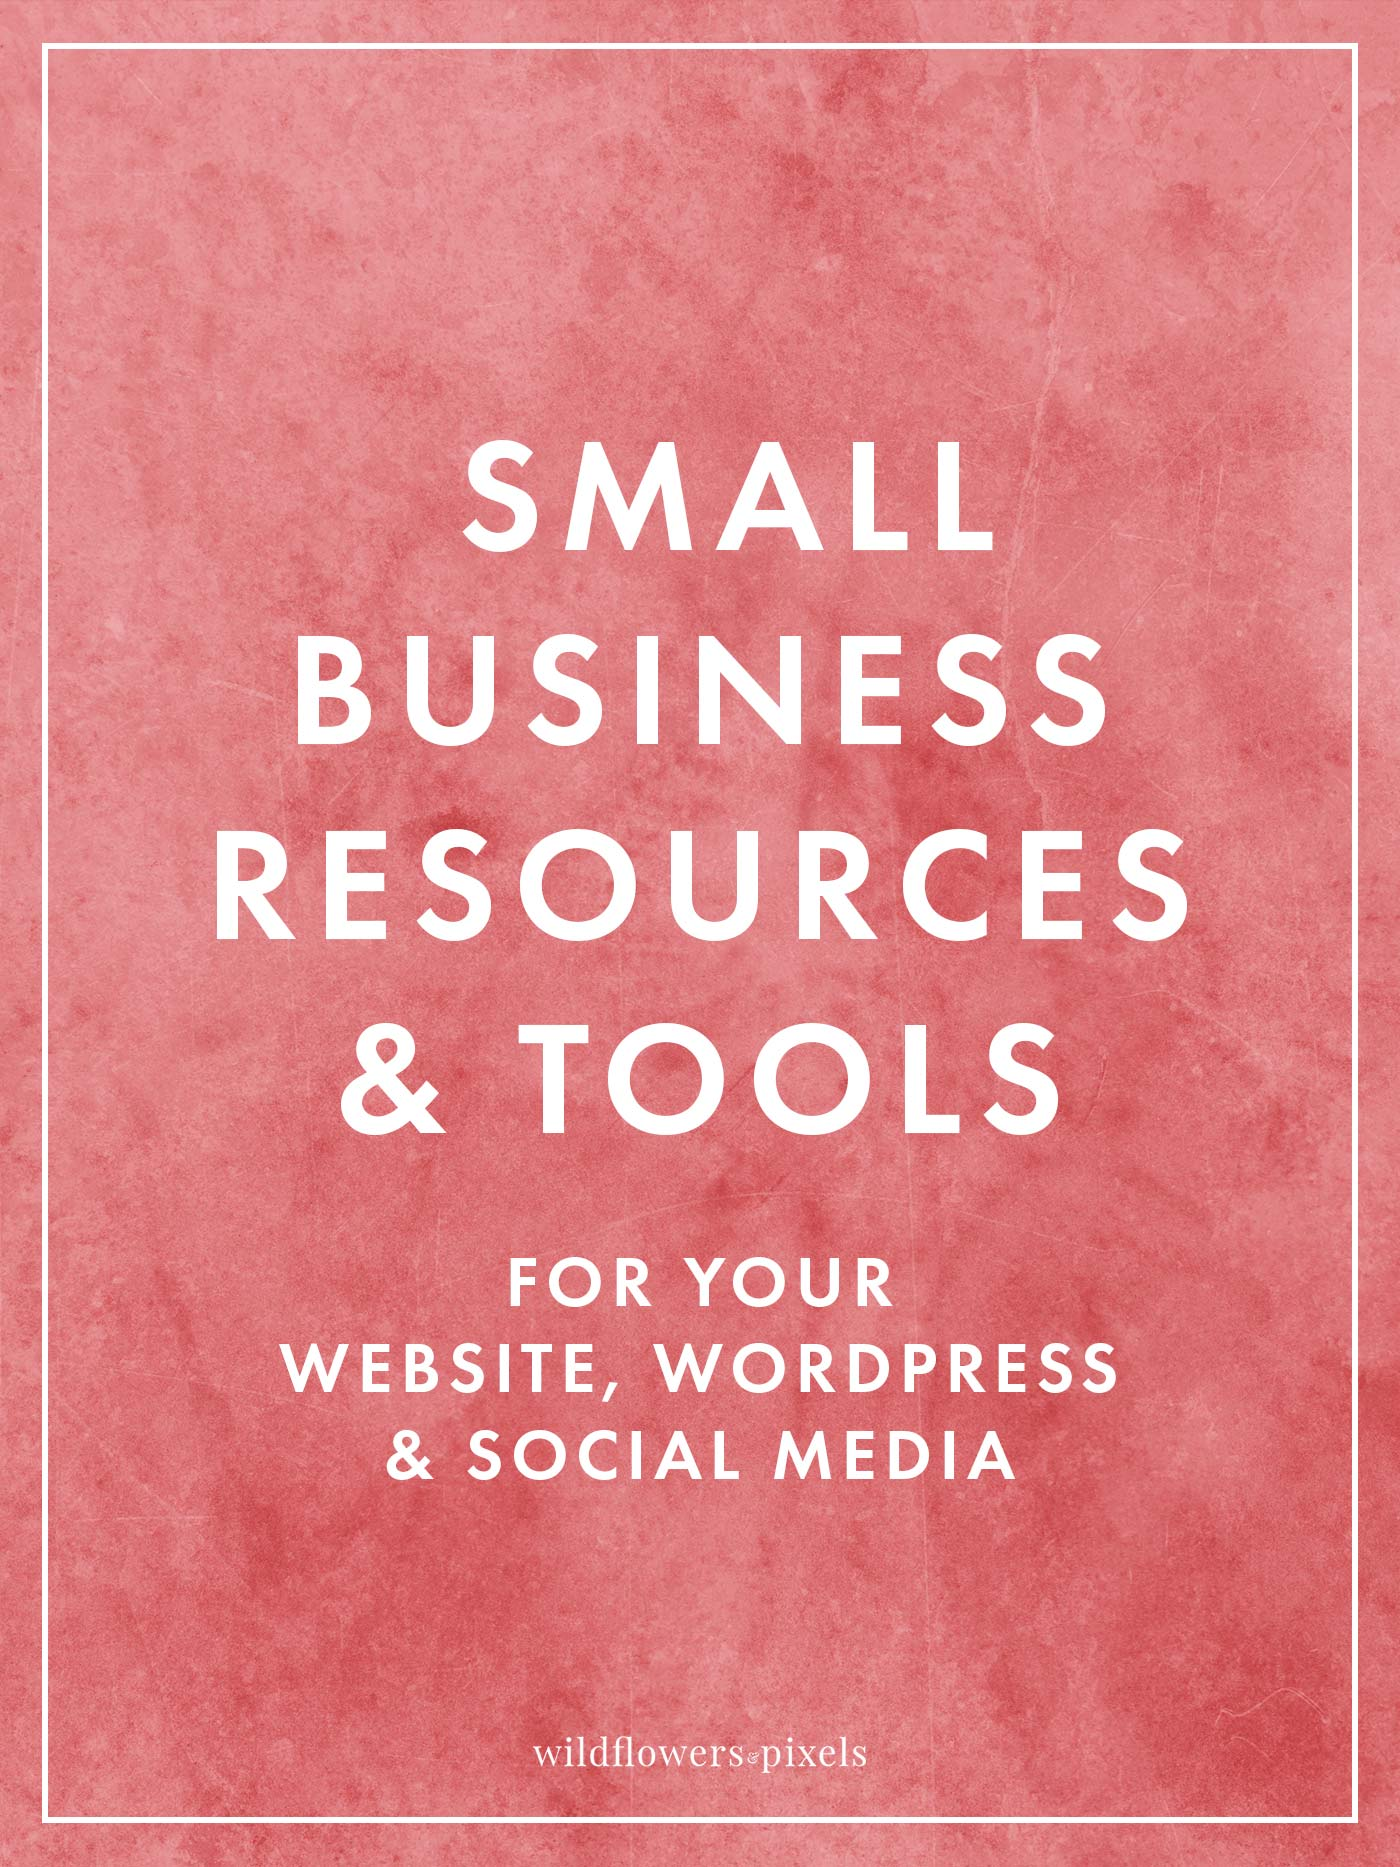 The best small business resources & tools for your website, WordPress & social media. Helping you to run your business more efficiently & allowing you to save time and money.